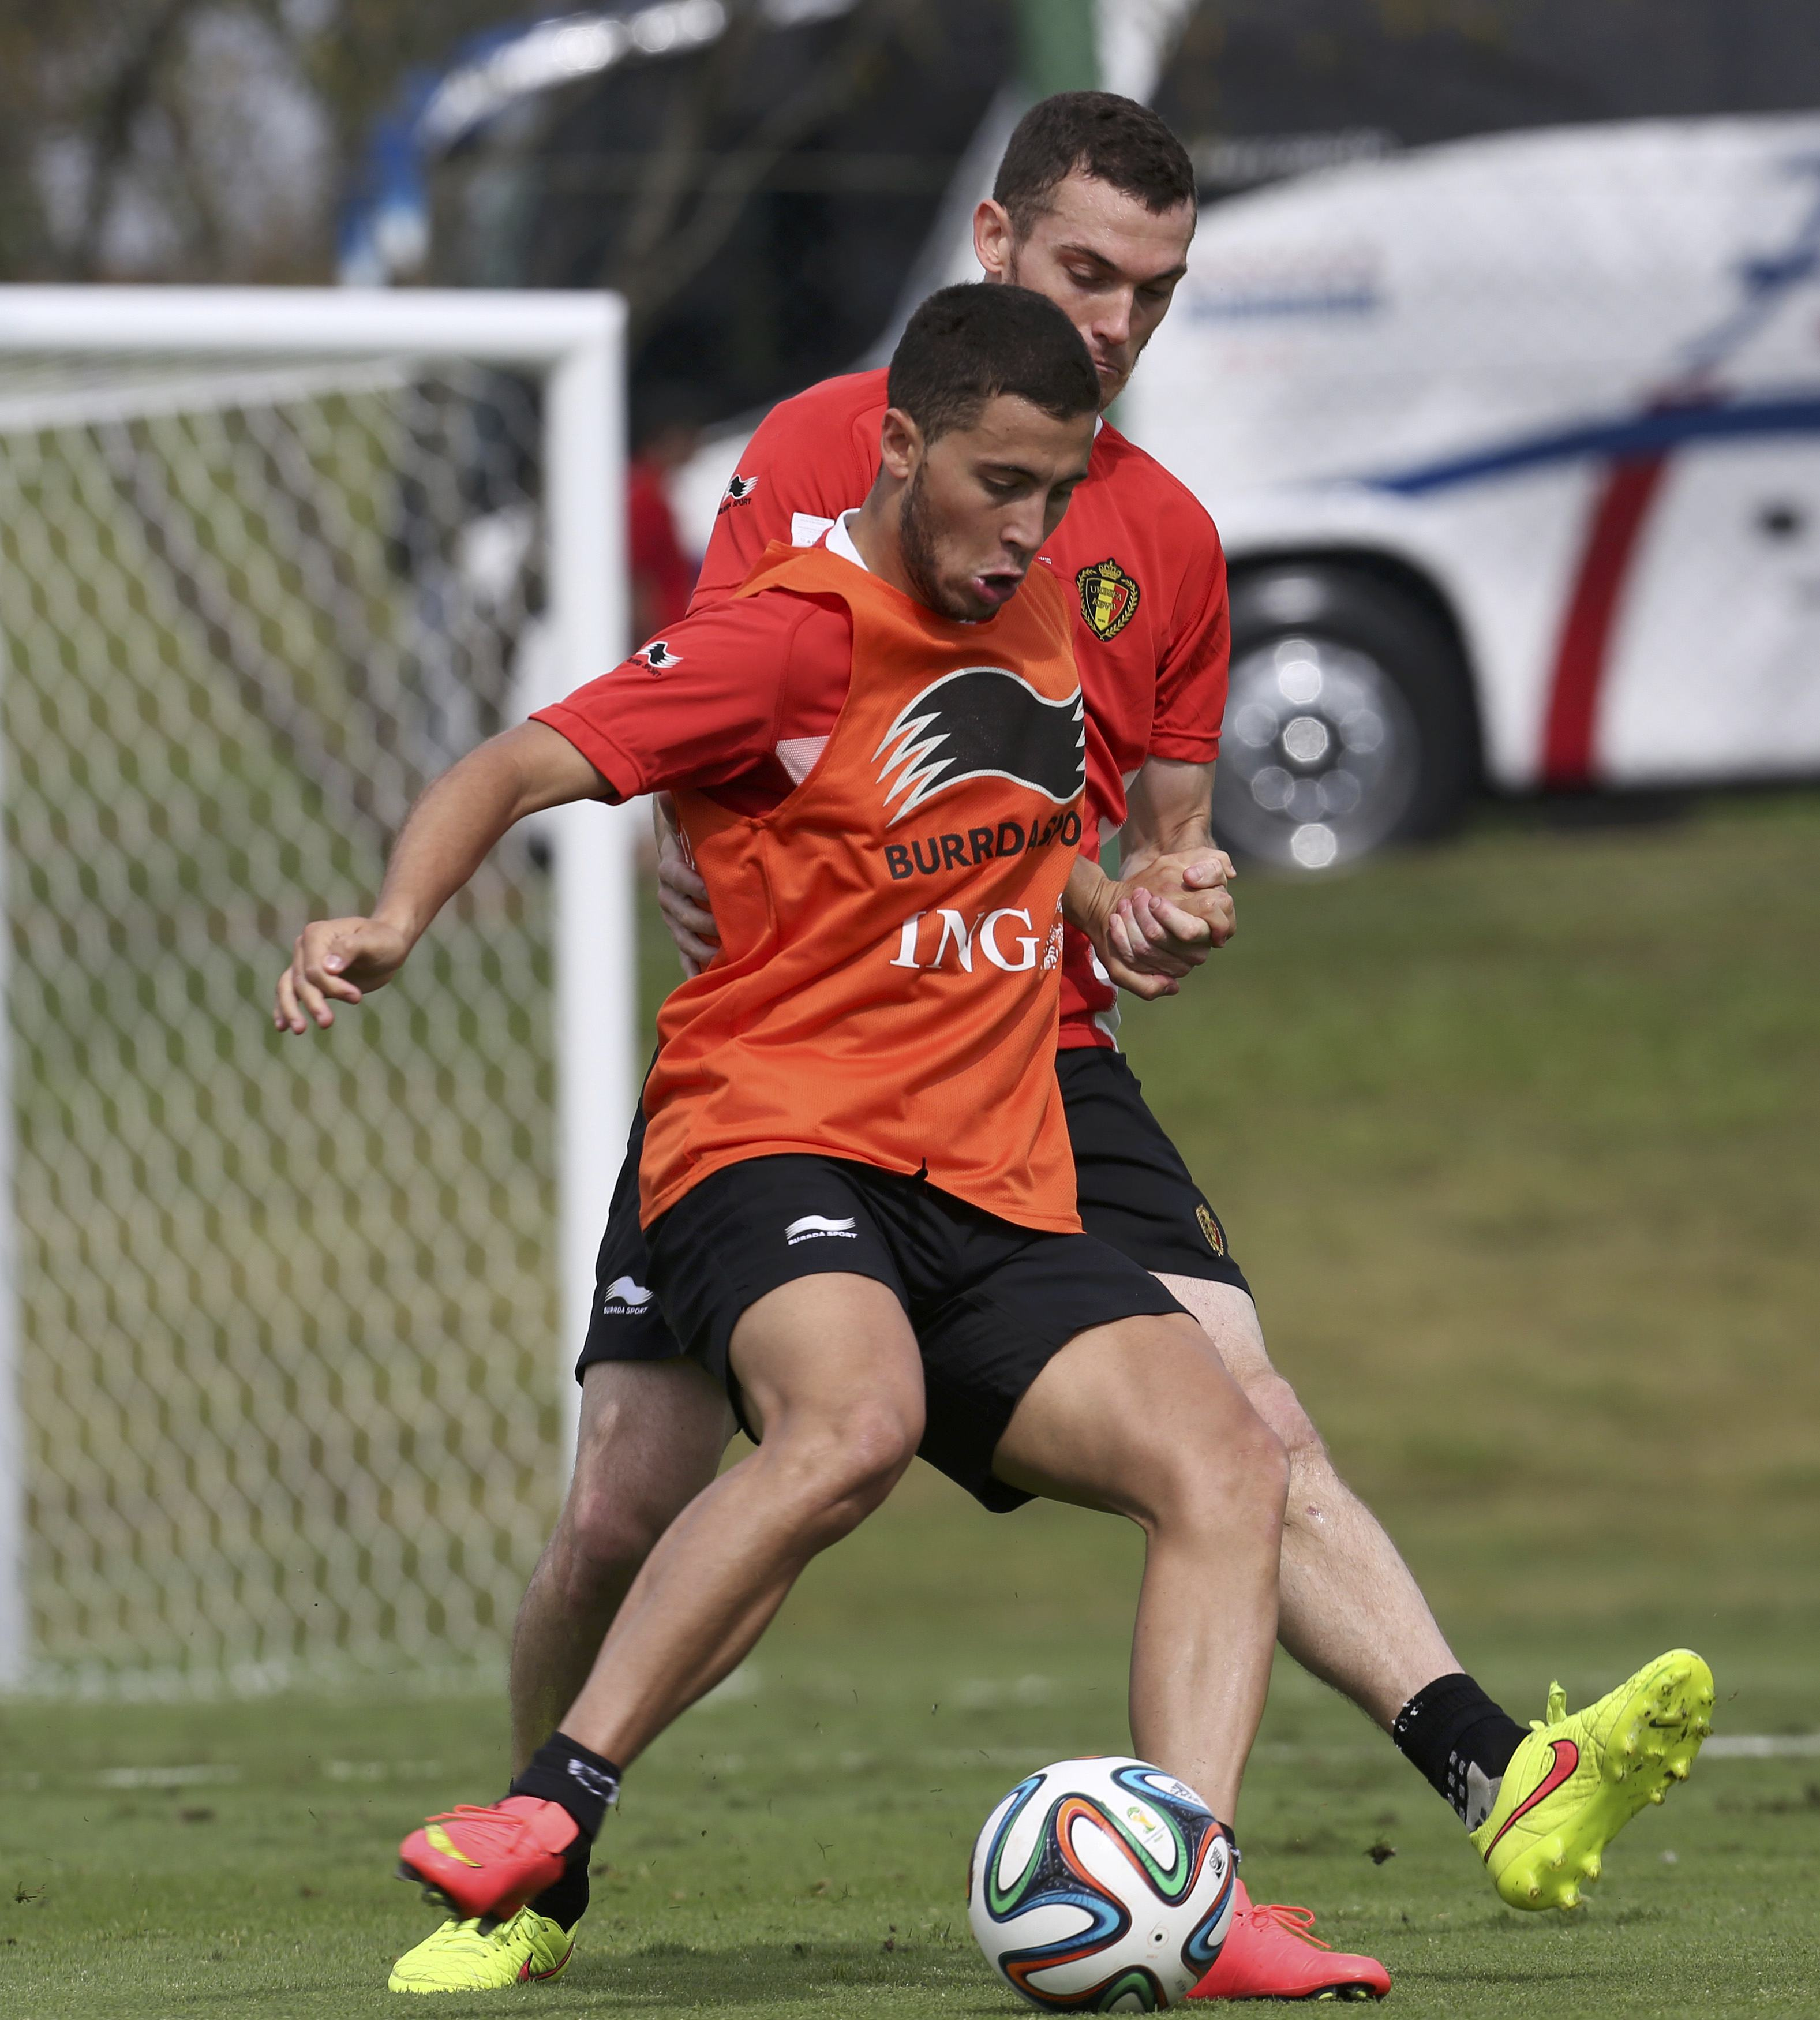 Belgium's national soccer team players Eden Hazard (Front) and Thomas Vermaelen fight for the ball during a training session in Mogi das Cruzes, near Sao Paulo June 14, 2014. Belgium will play its first match of the 2014 World Cup against Algeria on June